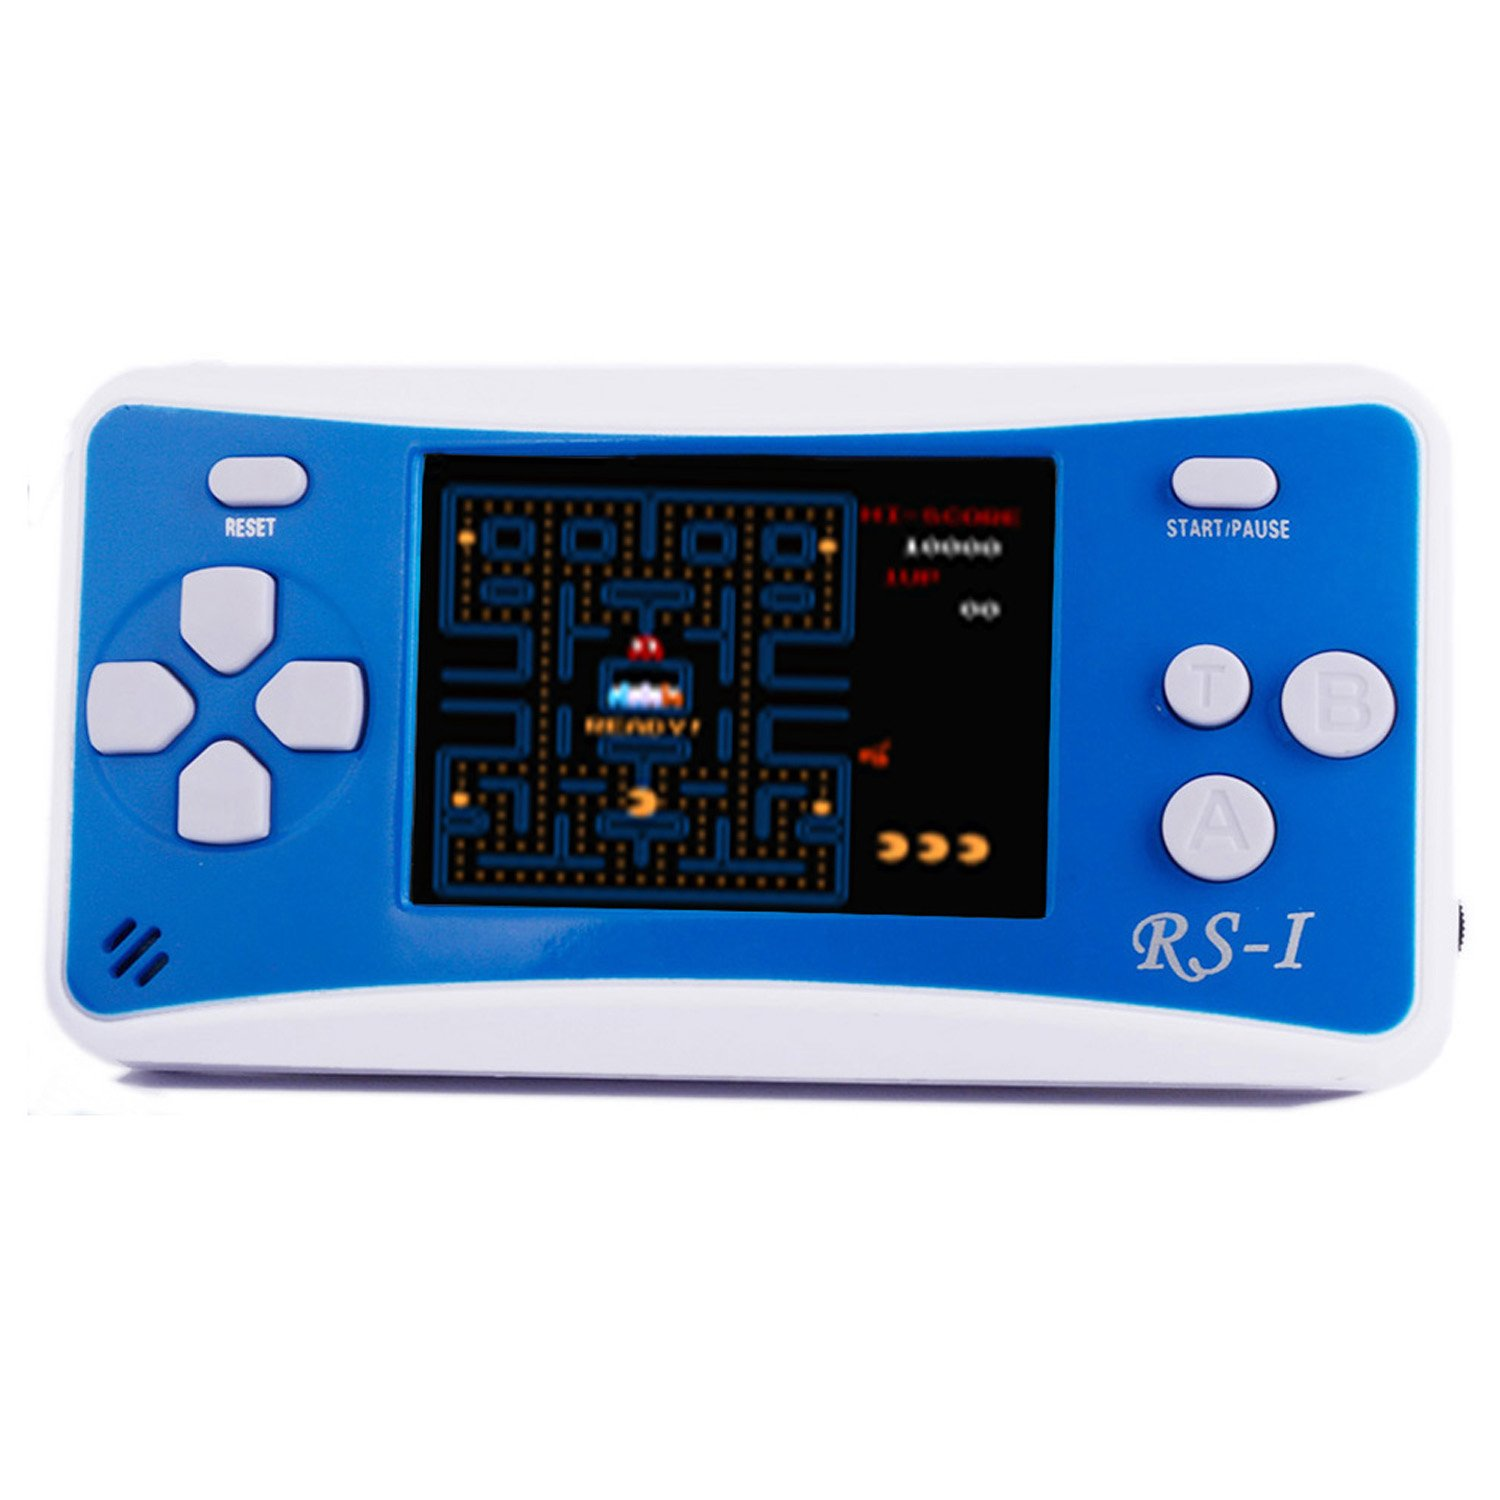 JJFUN RS-1 Handheld Game Console for Children,Retro Game Player with 2.5'' 8-Bit LCD Portable Video Games,The 80's Arcade Video Gaming System,Built-in 152 Classic Old School Games Entertainment-Blue